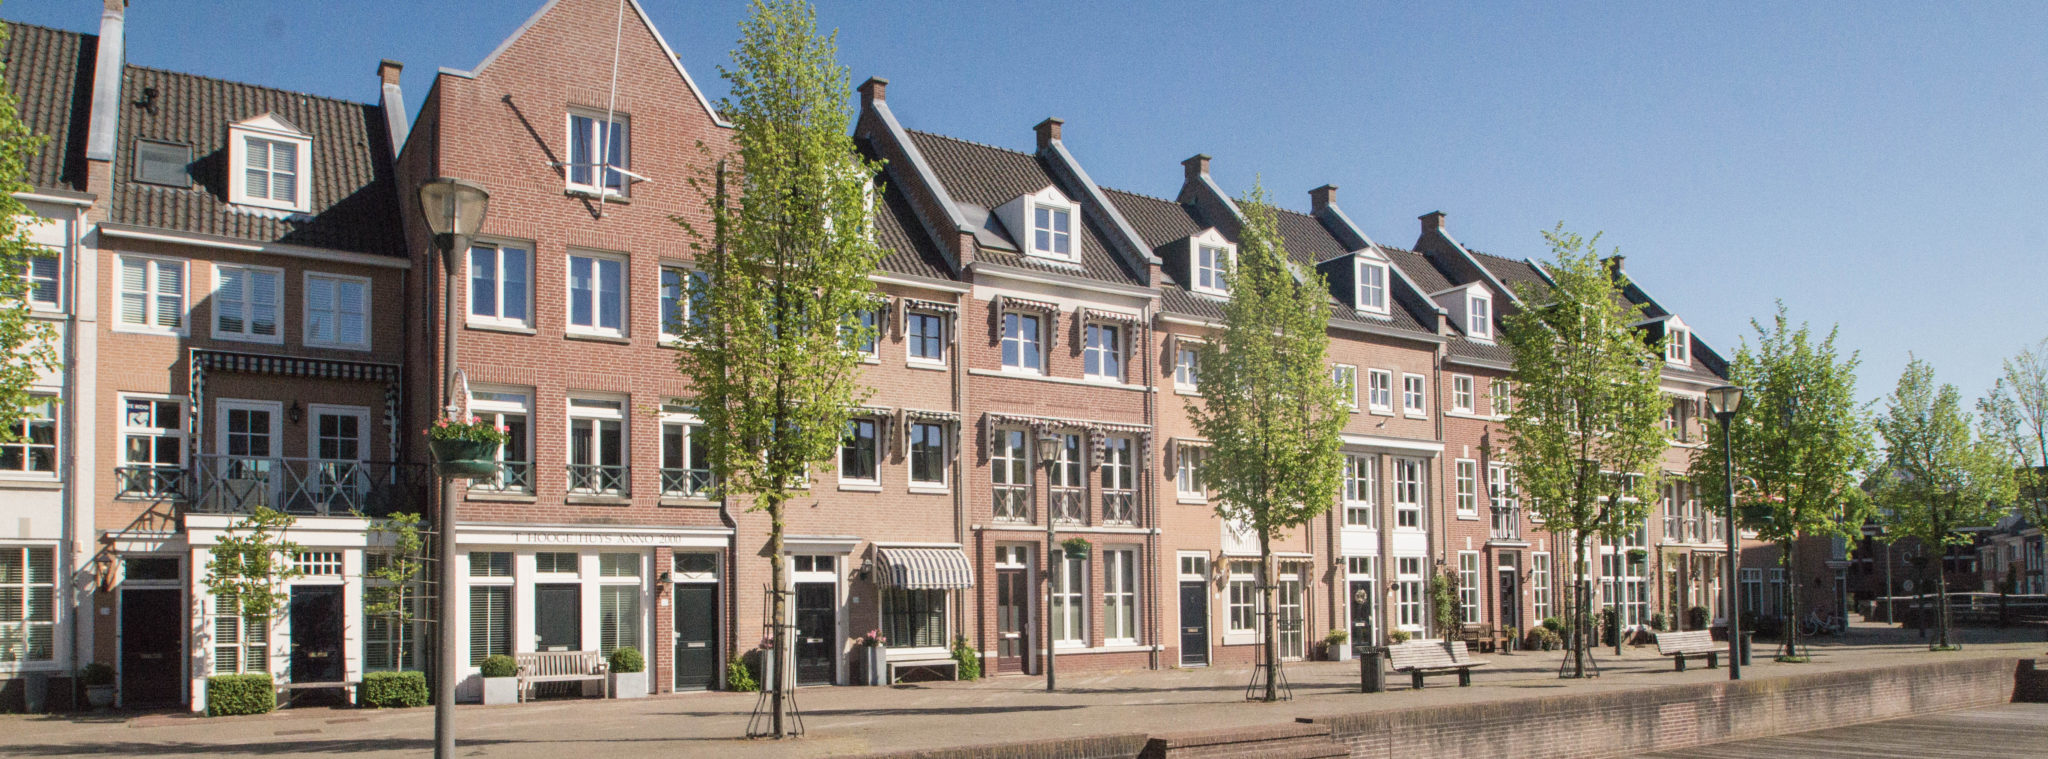 Helmond Netherlands: The neighbouring village Brandevoort looks like the Truman Show.